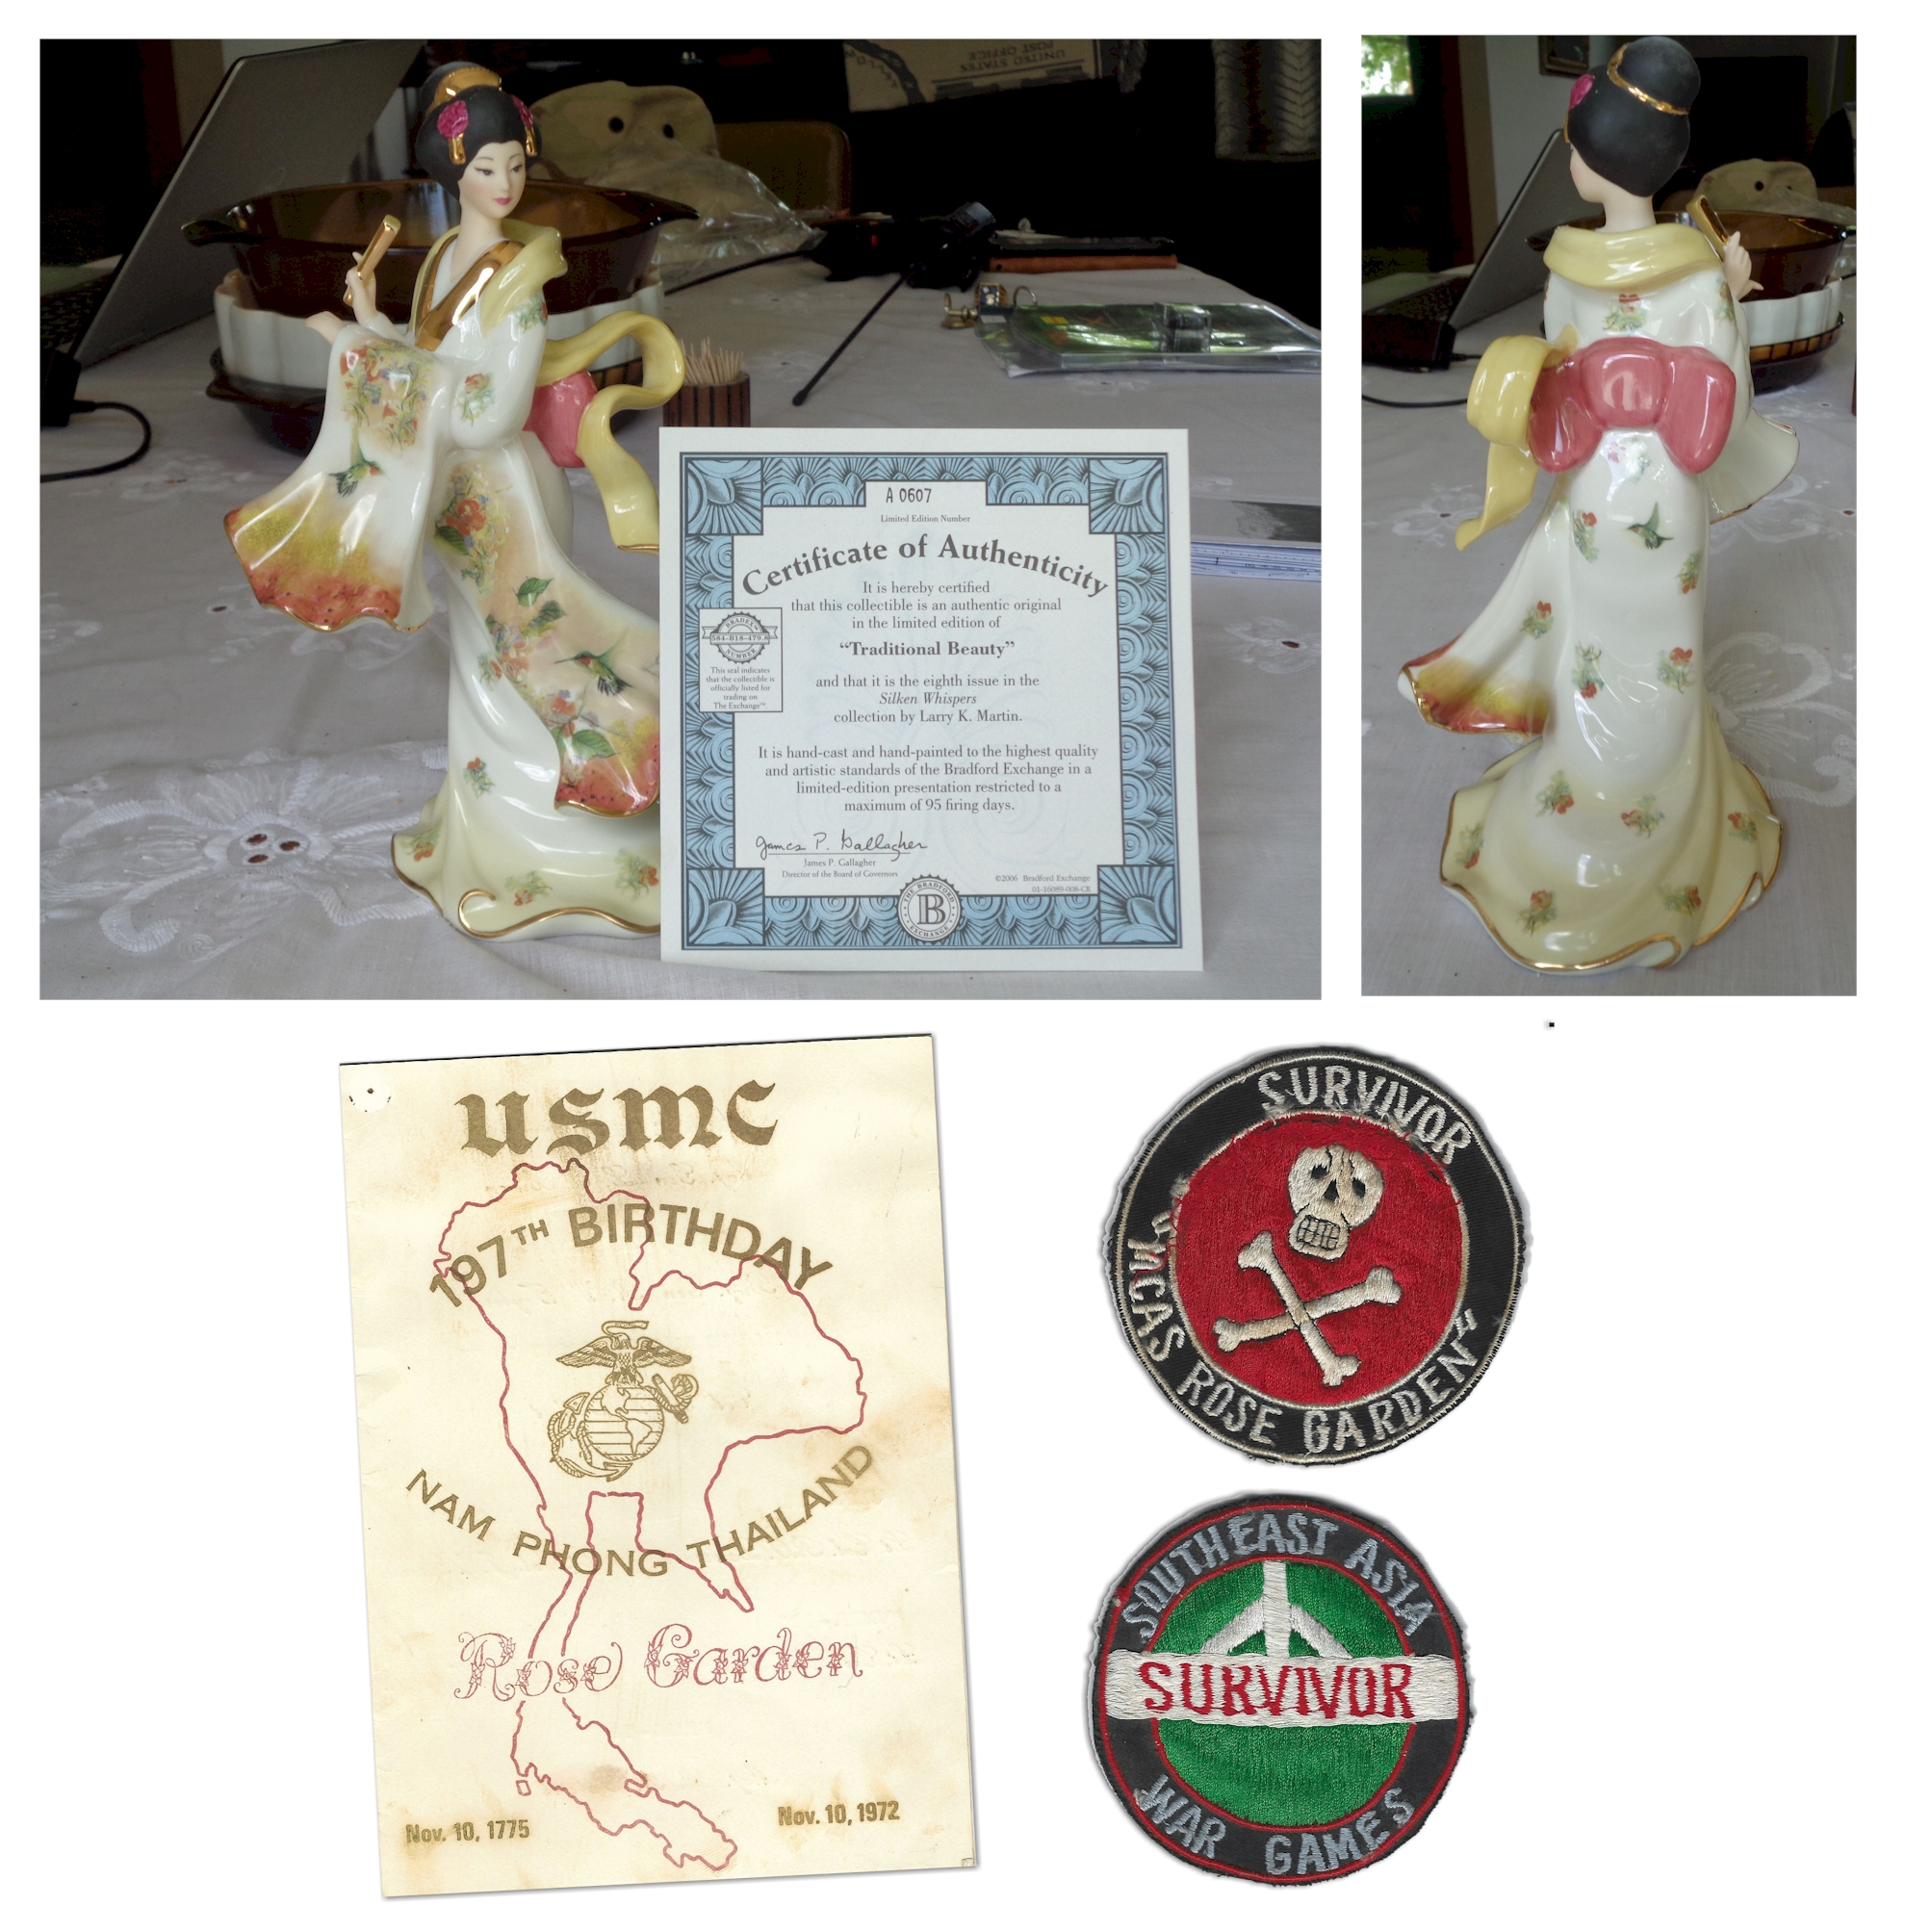 Original Porcelain Thai Doll with Nam Phong Menu and MCAS Service Patches